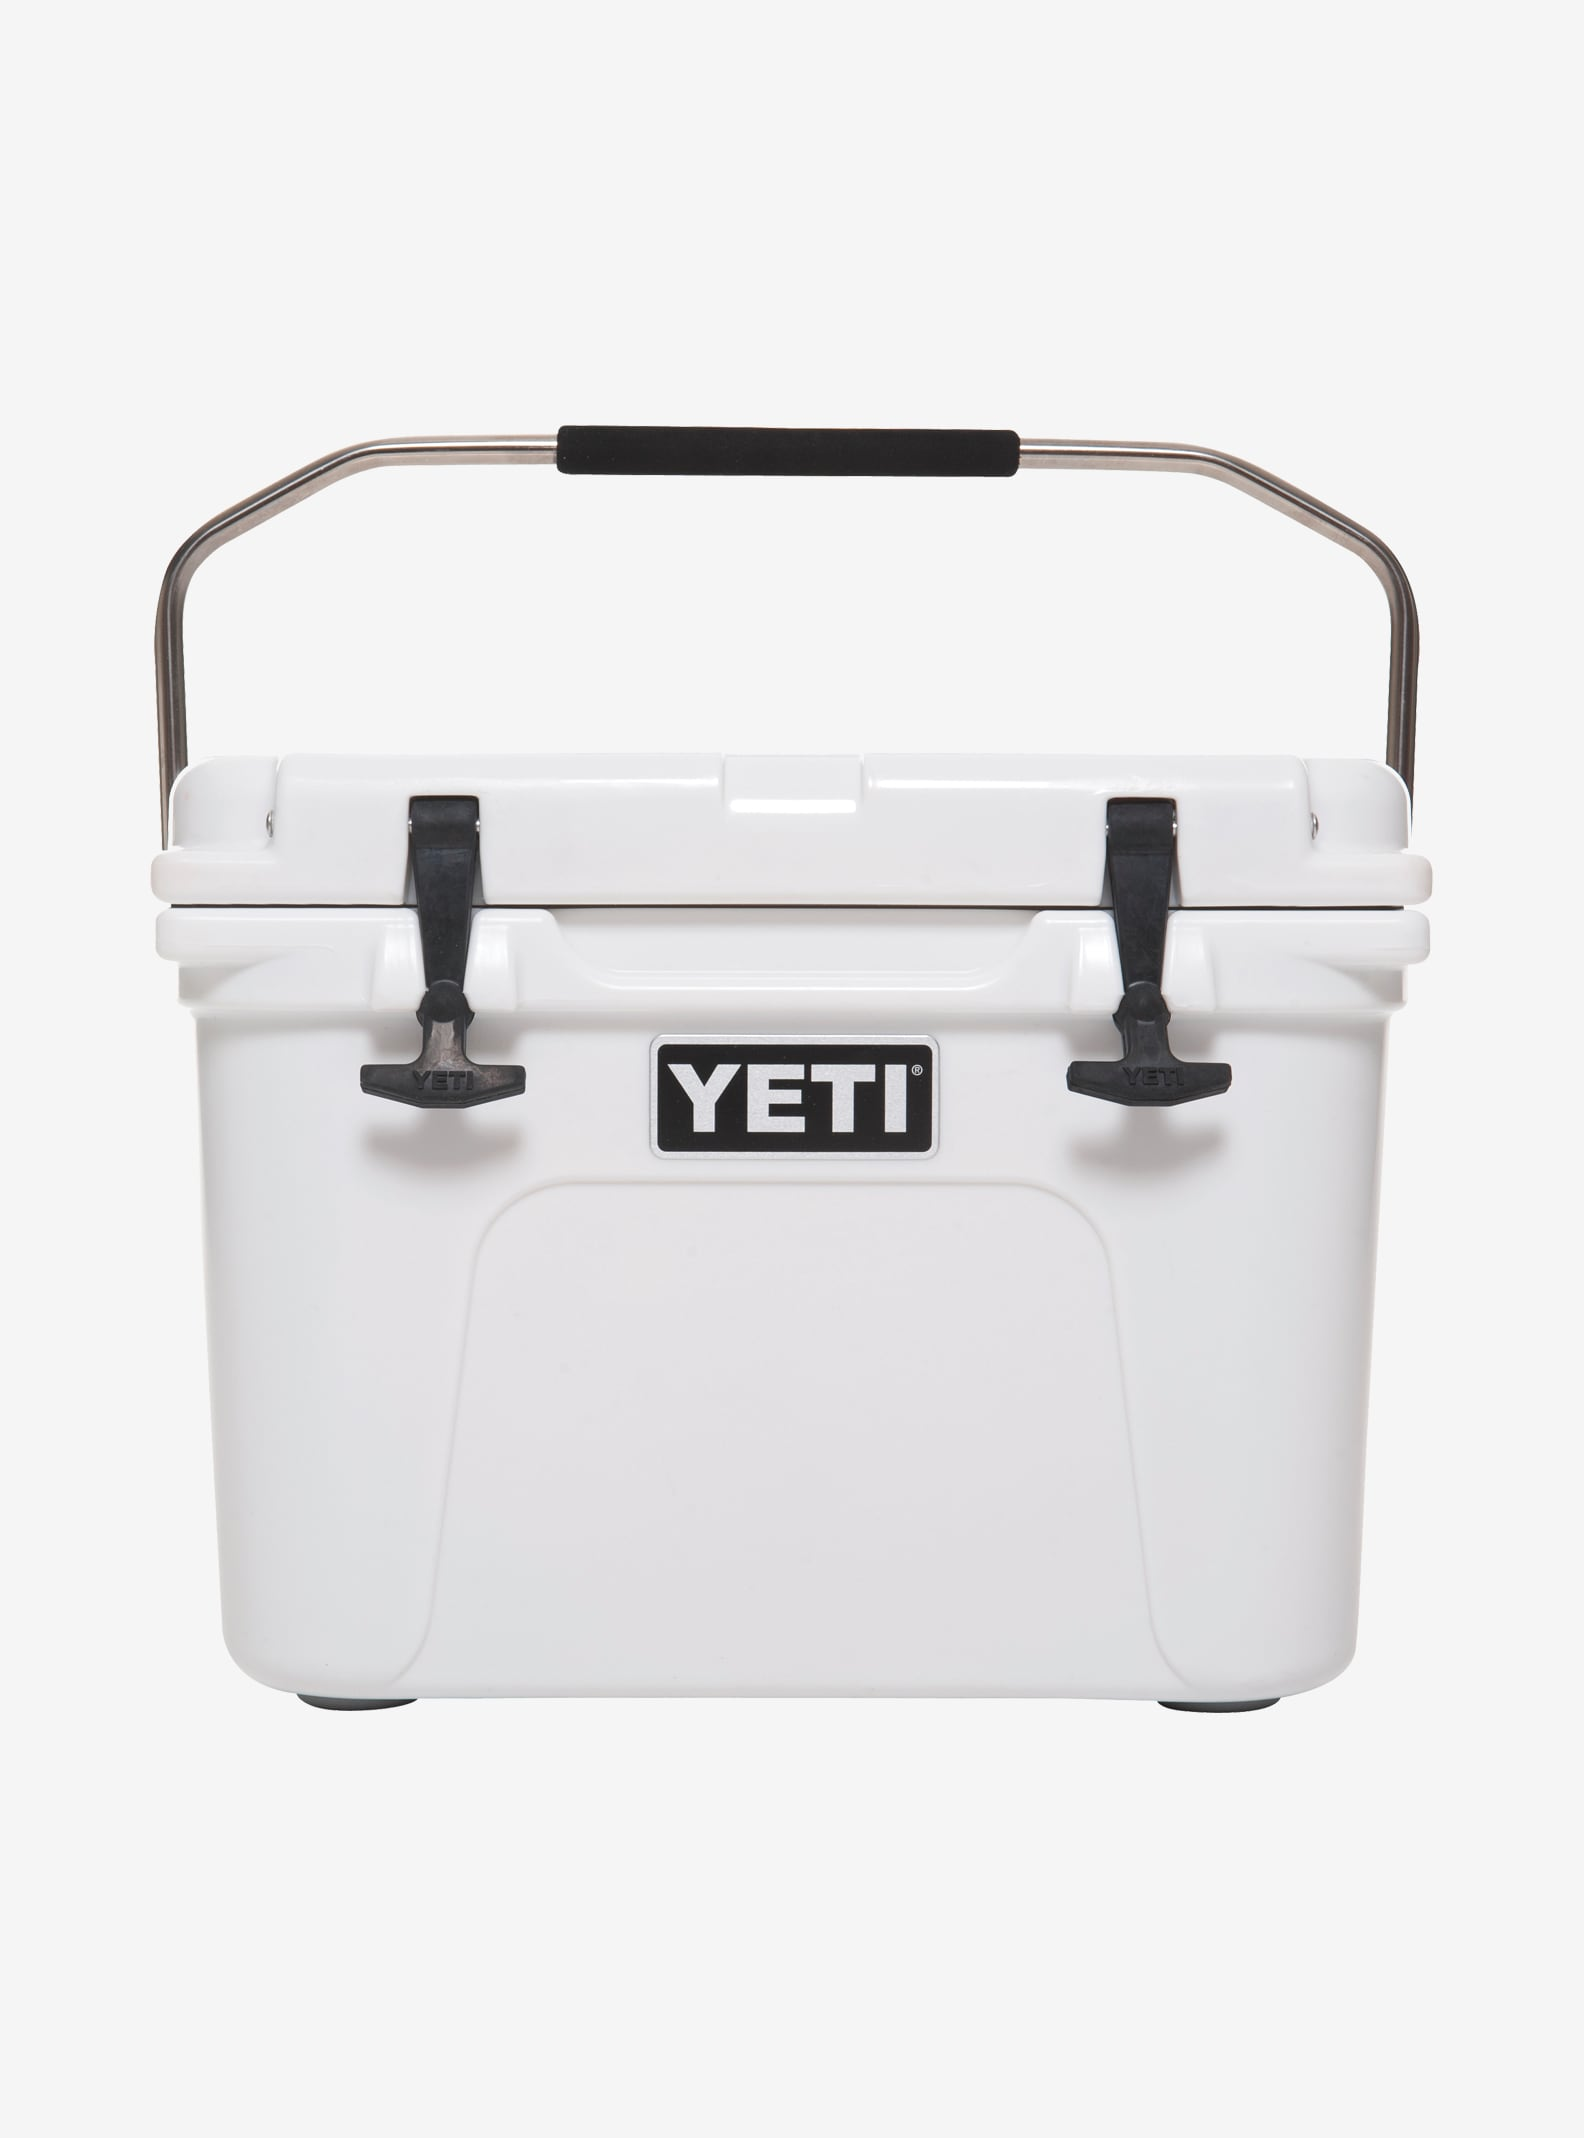 YETI Roadie 20 Cooler shown in White